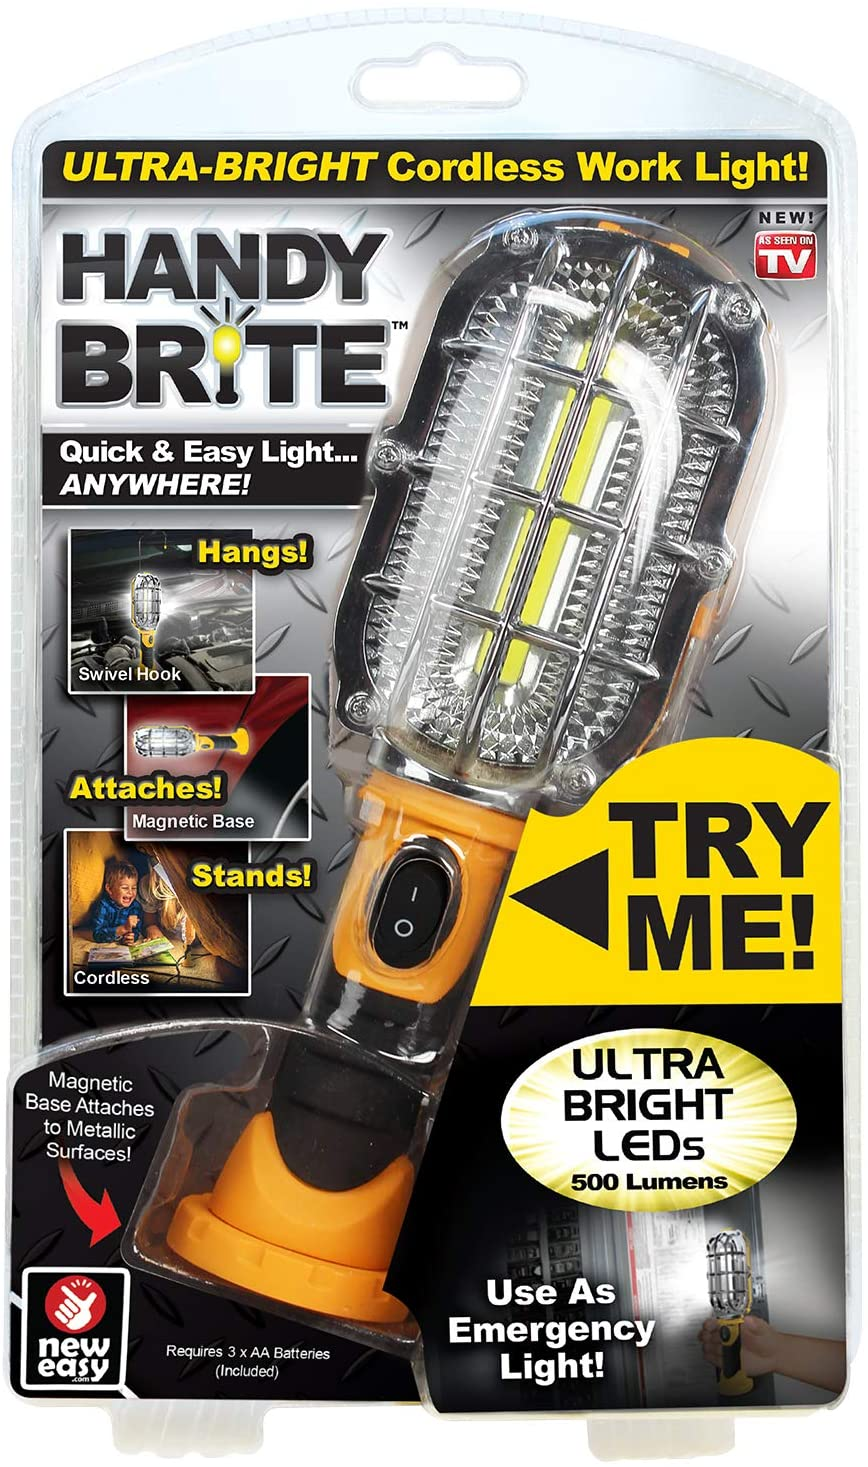 shopify-As Seen on TV Handy Brite Heavy Duty Cordless LED Light-1